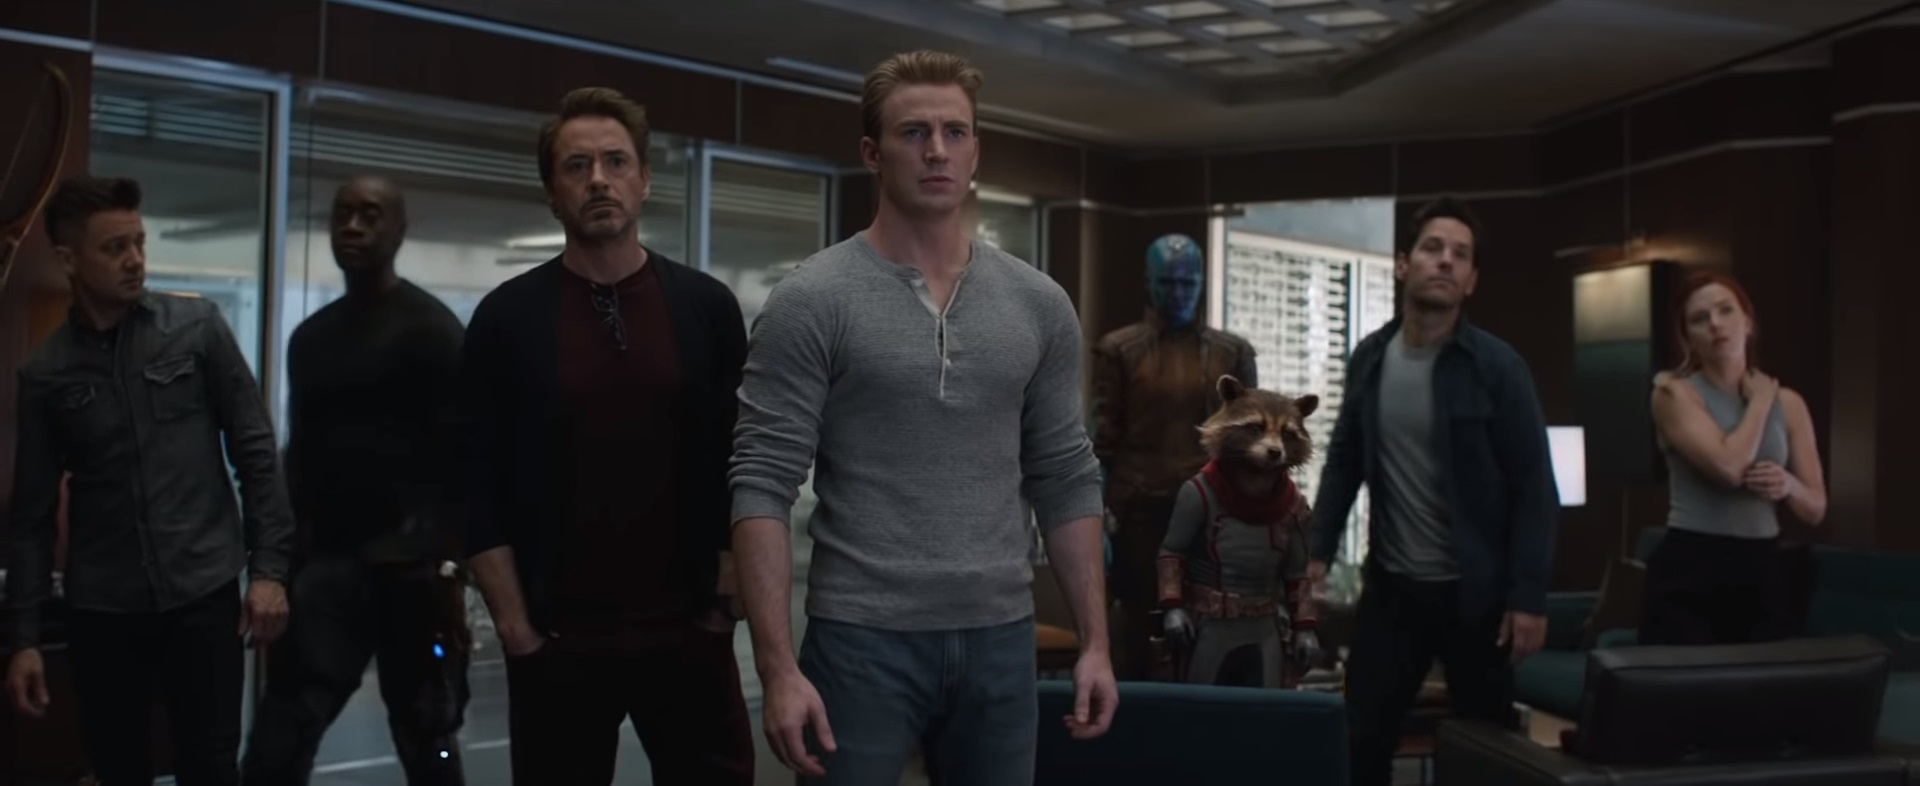 'Avengers: Endgame' cast teases the movie as new